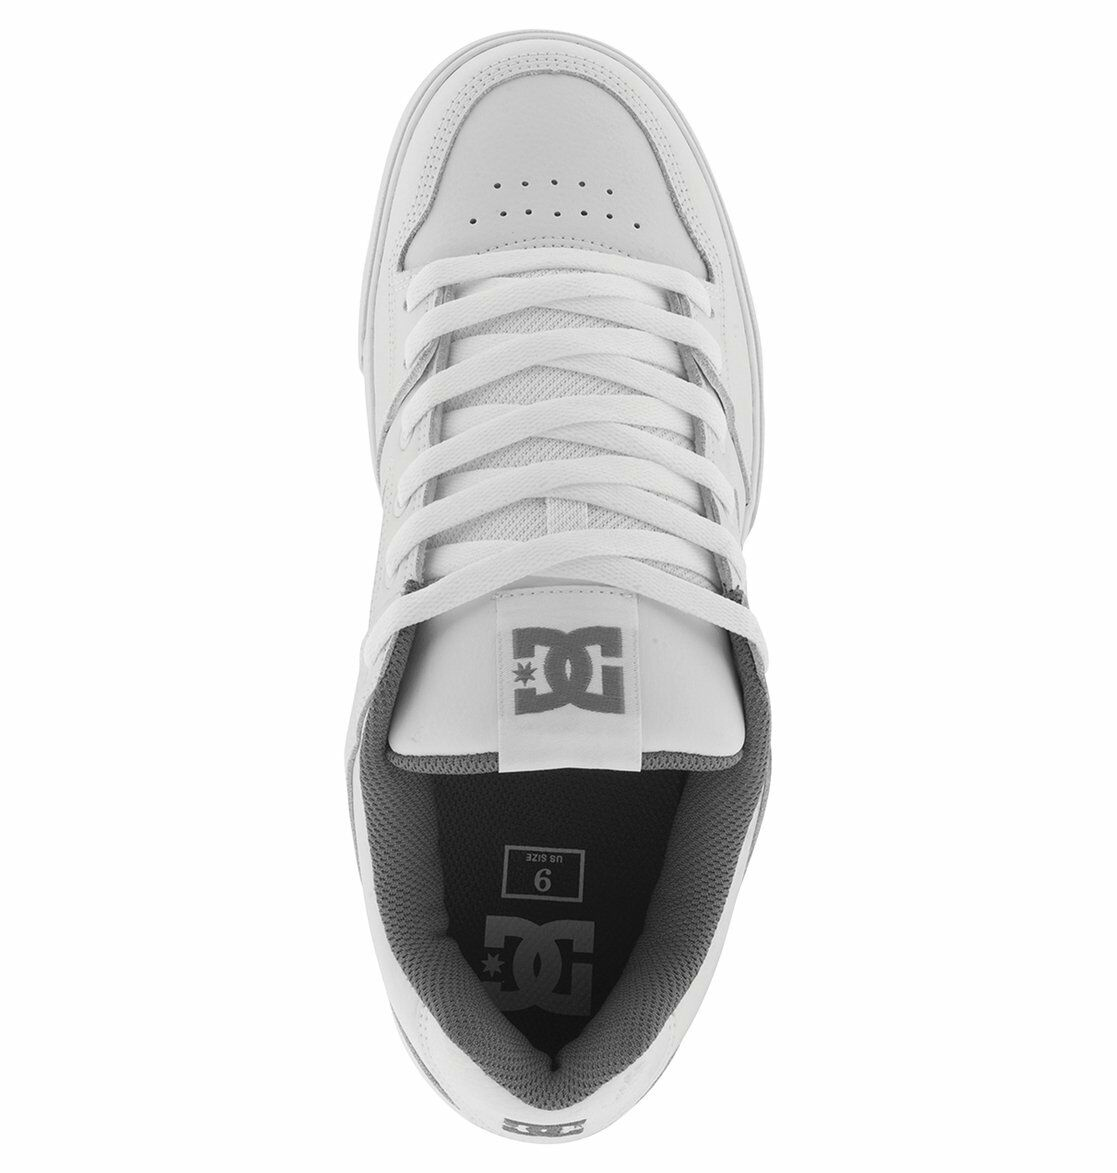 DC MEN'S PURE White/Battleship/White(HBW) MEN'S DC Shoes 300660 FAST SHIPPING 0d1a50